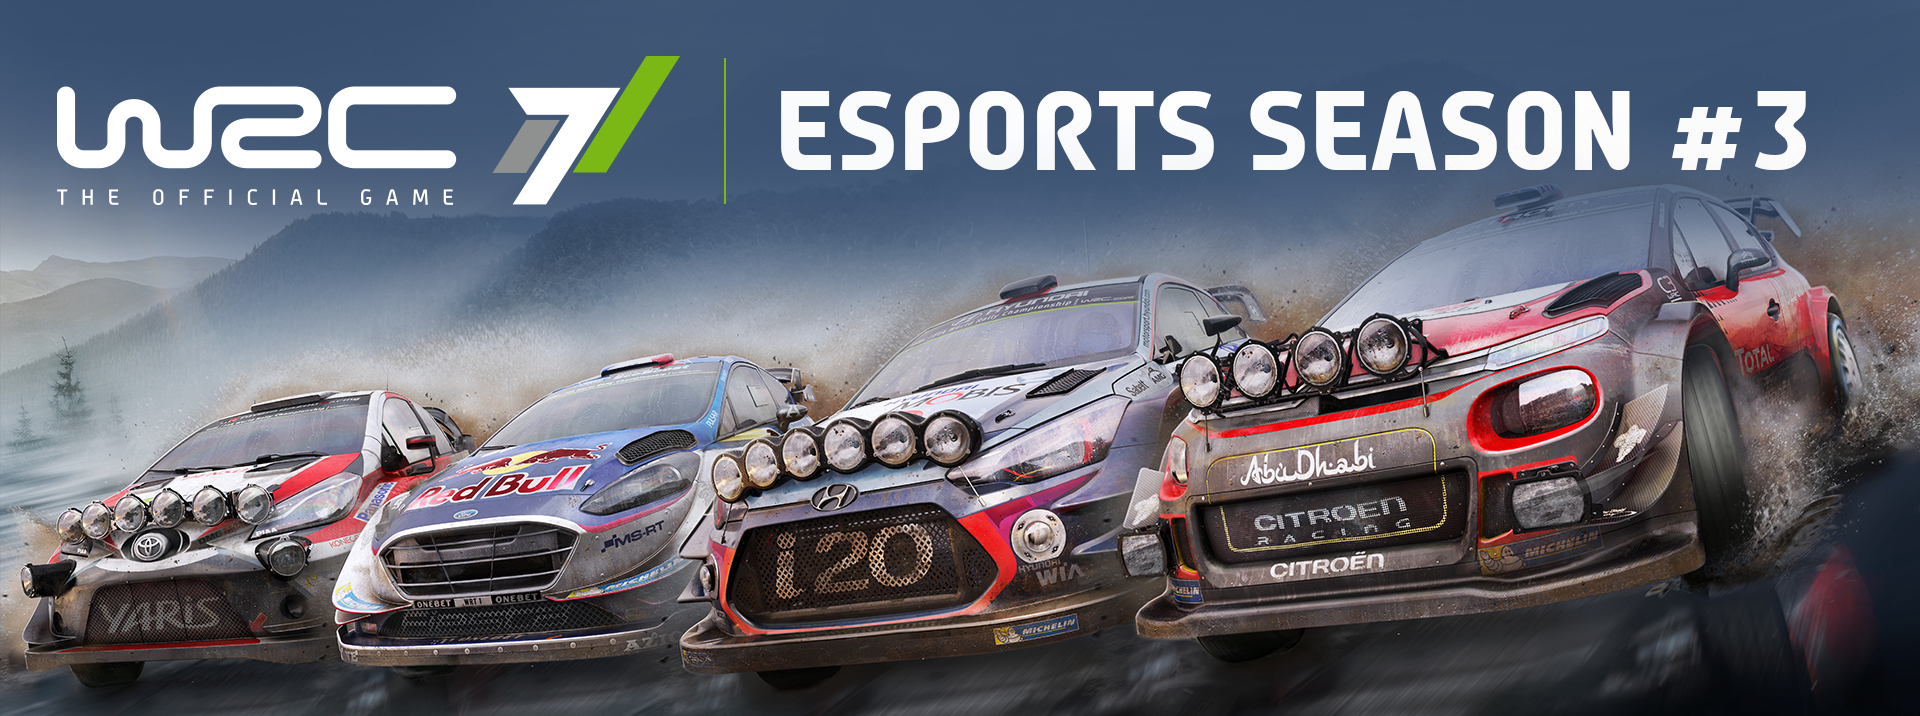 WRC 7 :: eSports WRC season #3 starting soon!